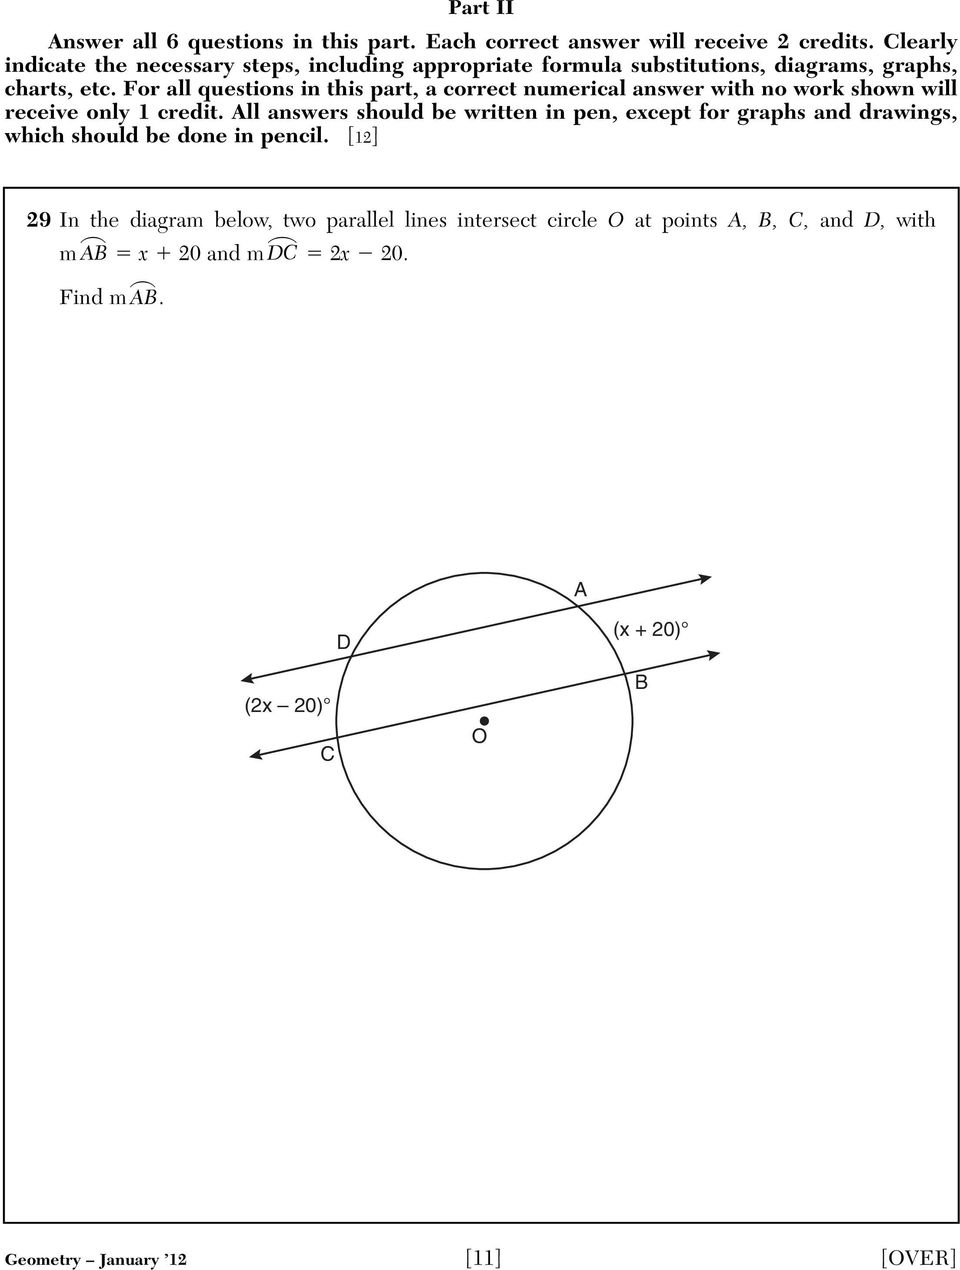 For all questions in this part, a correct numerical answer with no work shown will receive only 1 credit.